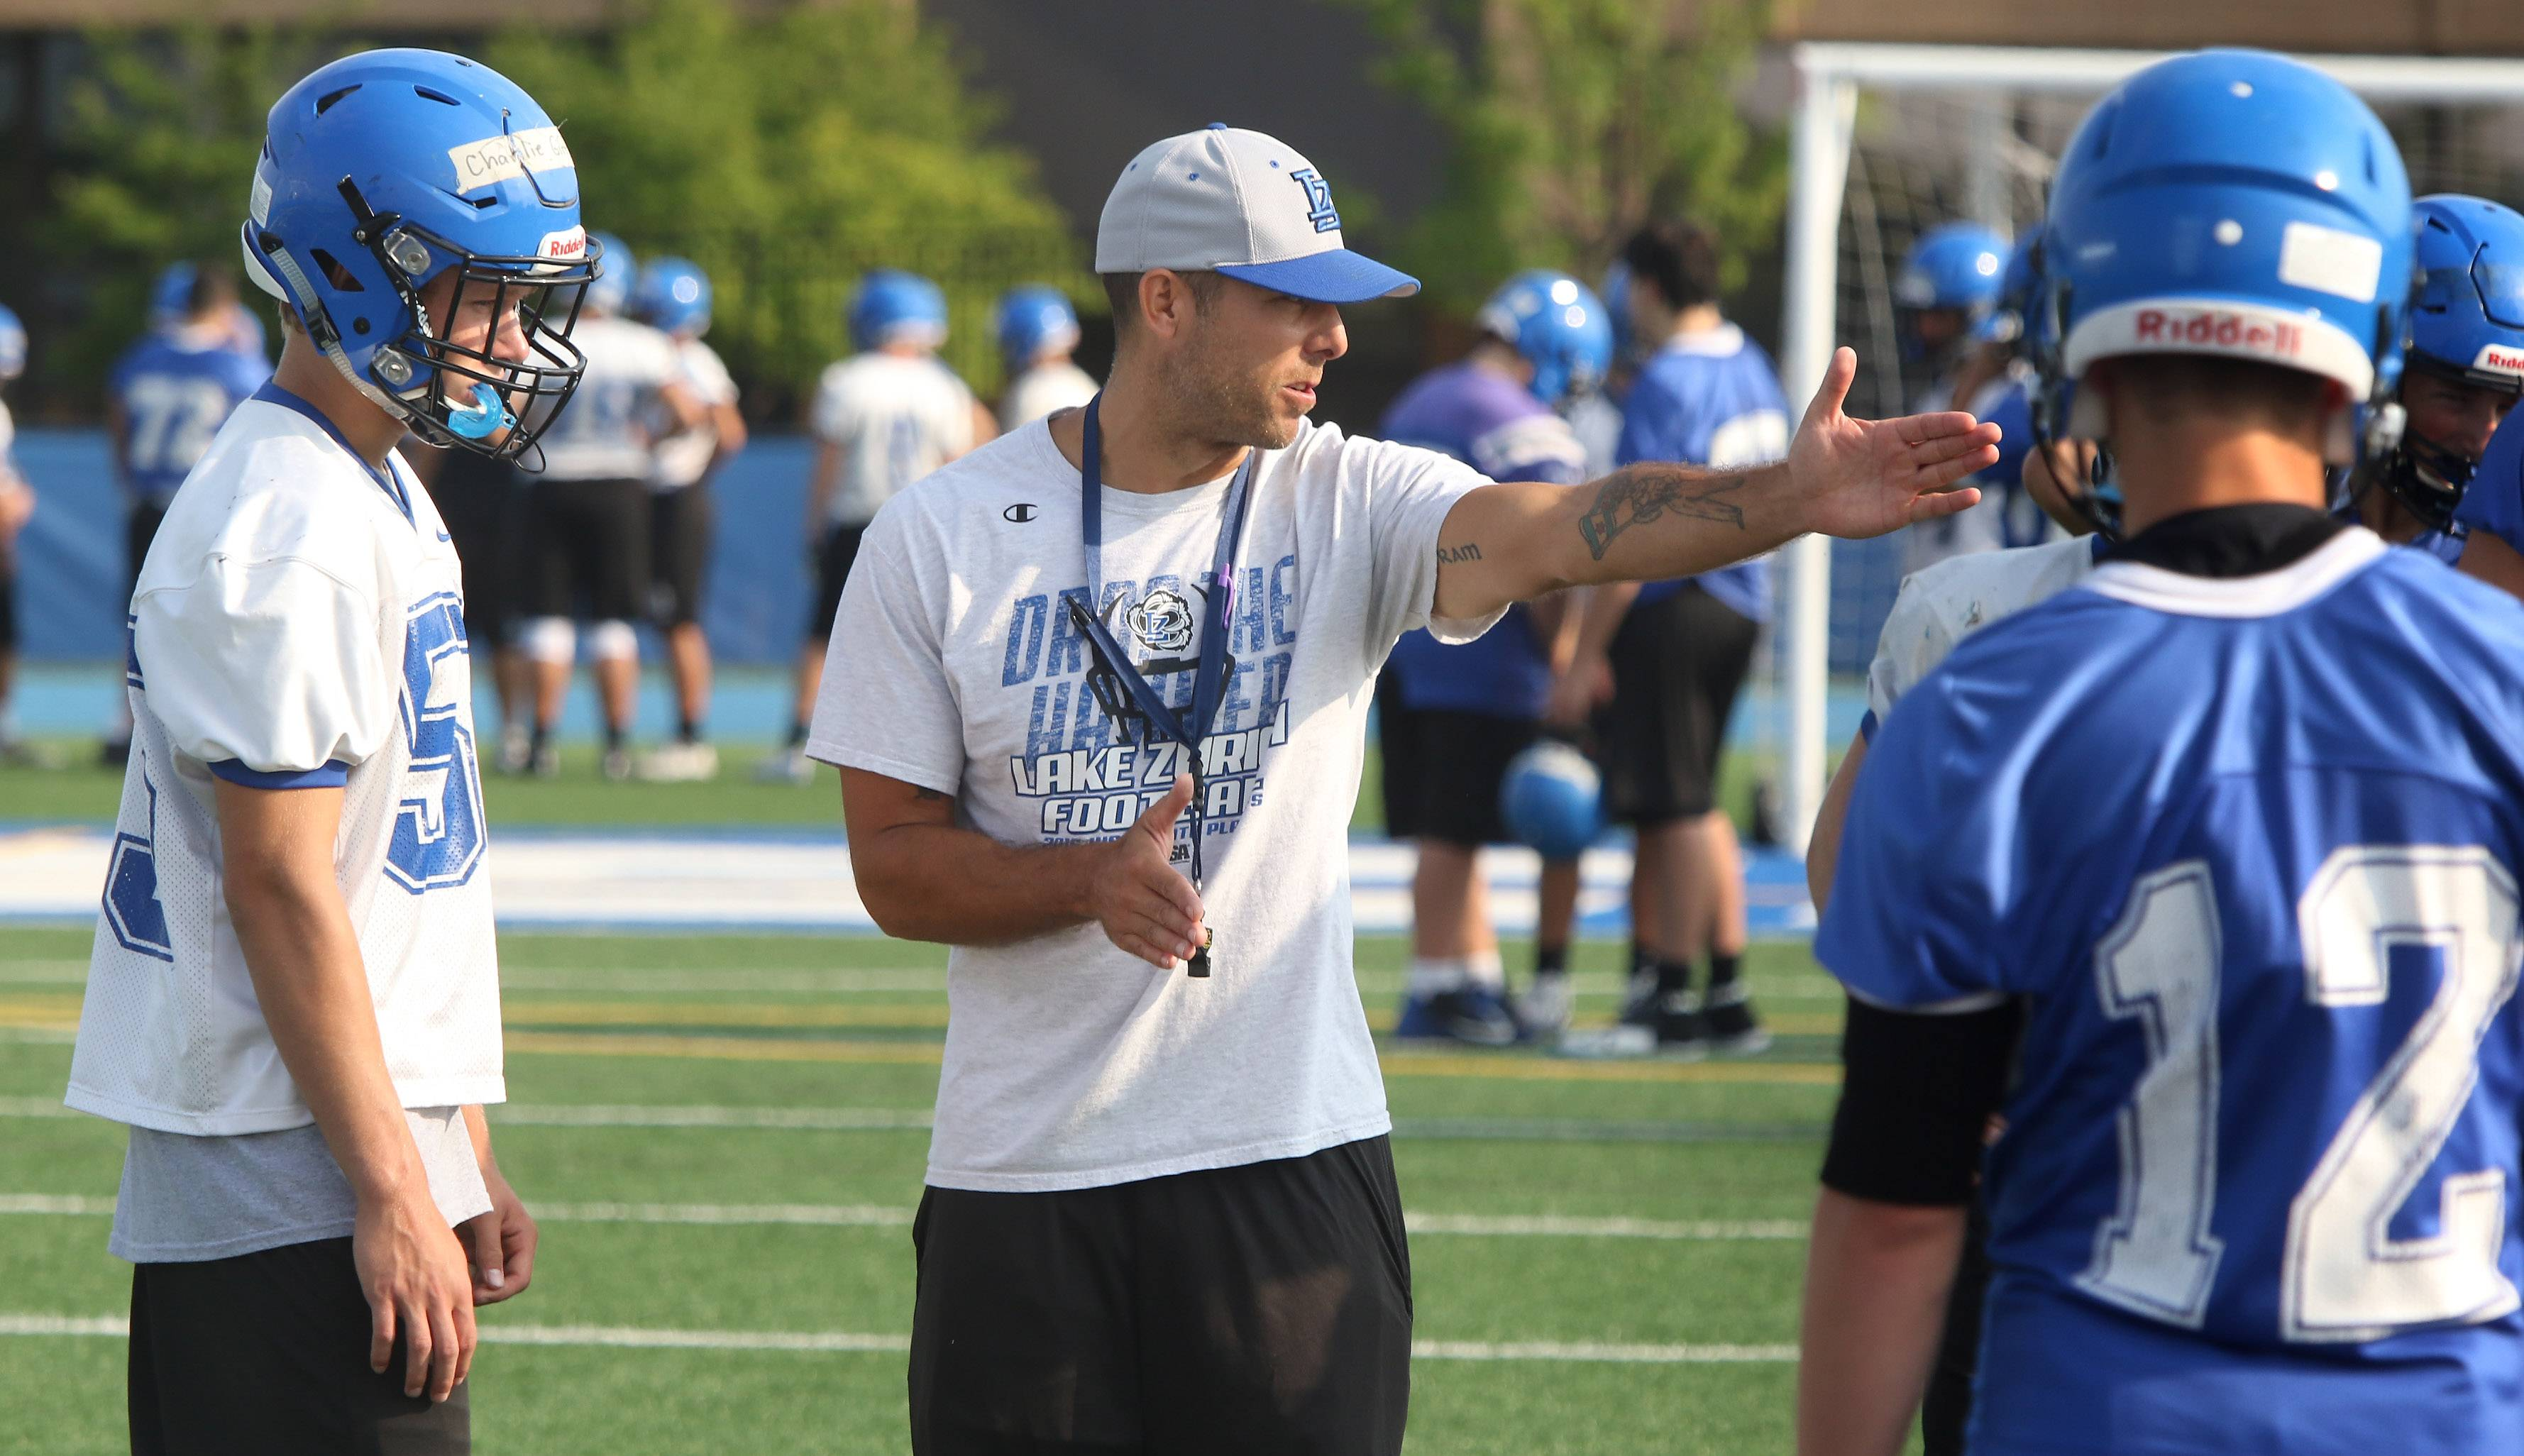 Head coach Luke Mertens directs his players during the first day of football practice at Lake Zurich High School on Monday.